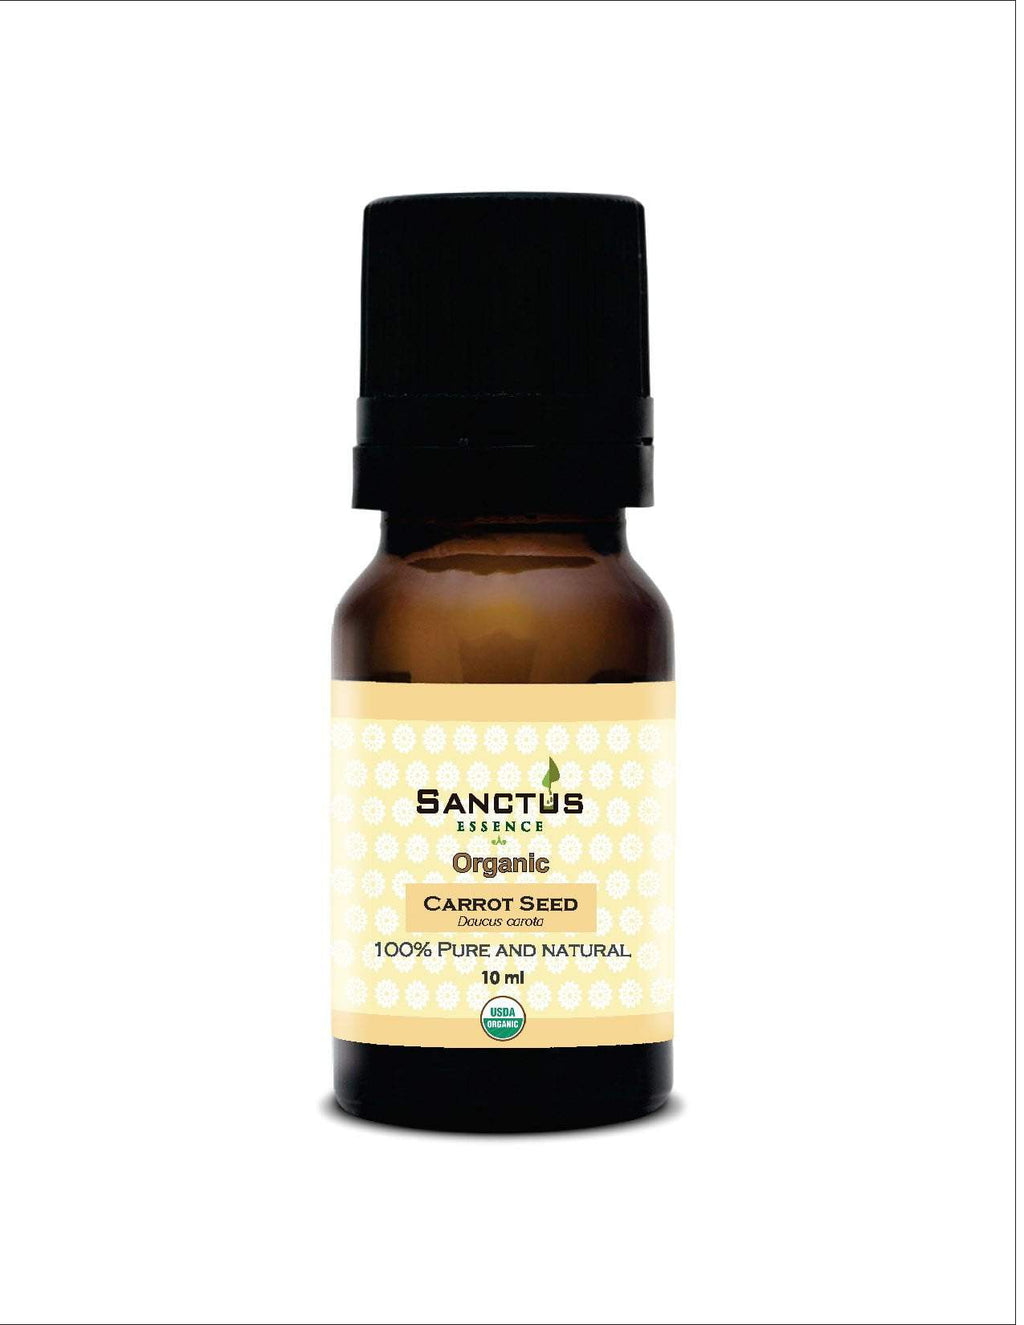 Organic Carrot seed oil - Sanctus Essence